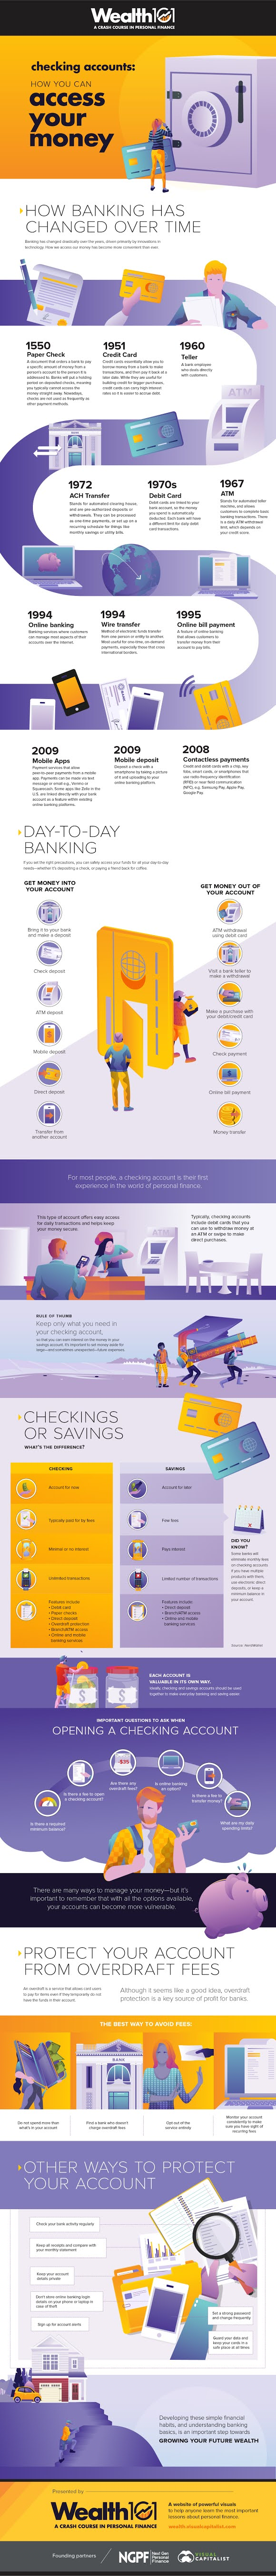 Checking Accounts: How You Can Access Your Money #infographic